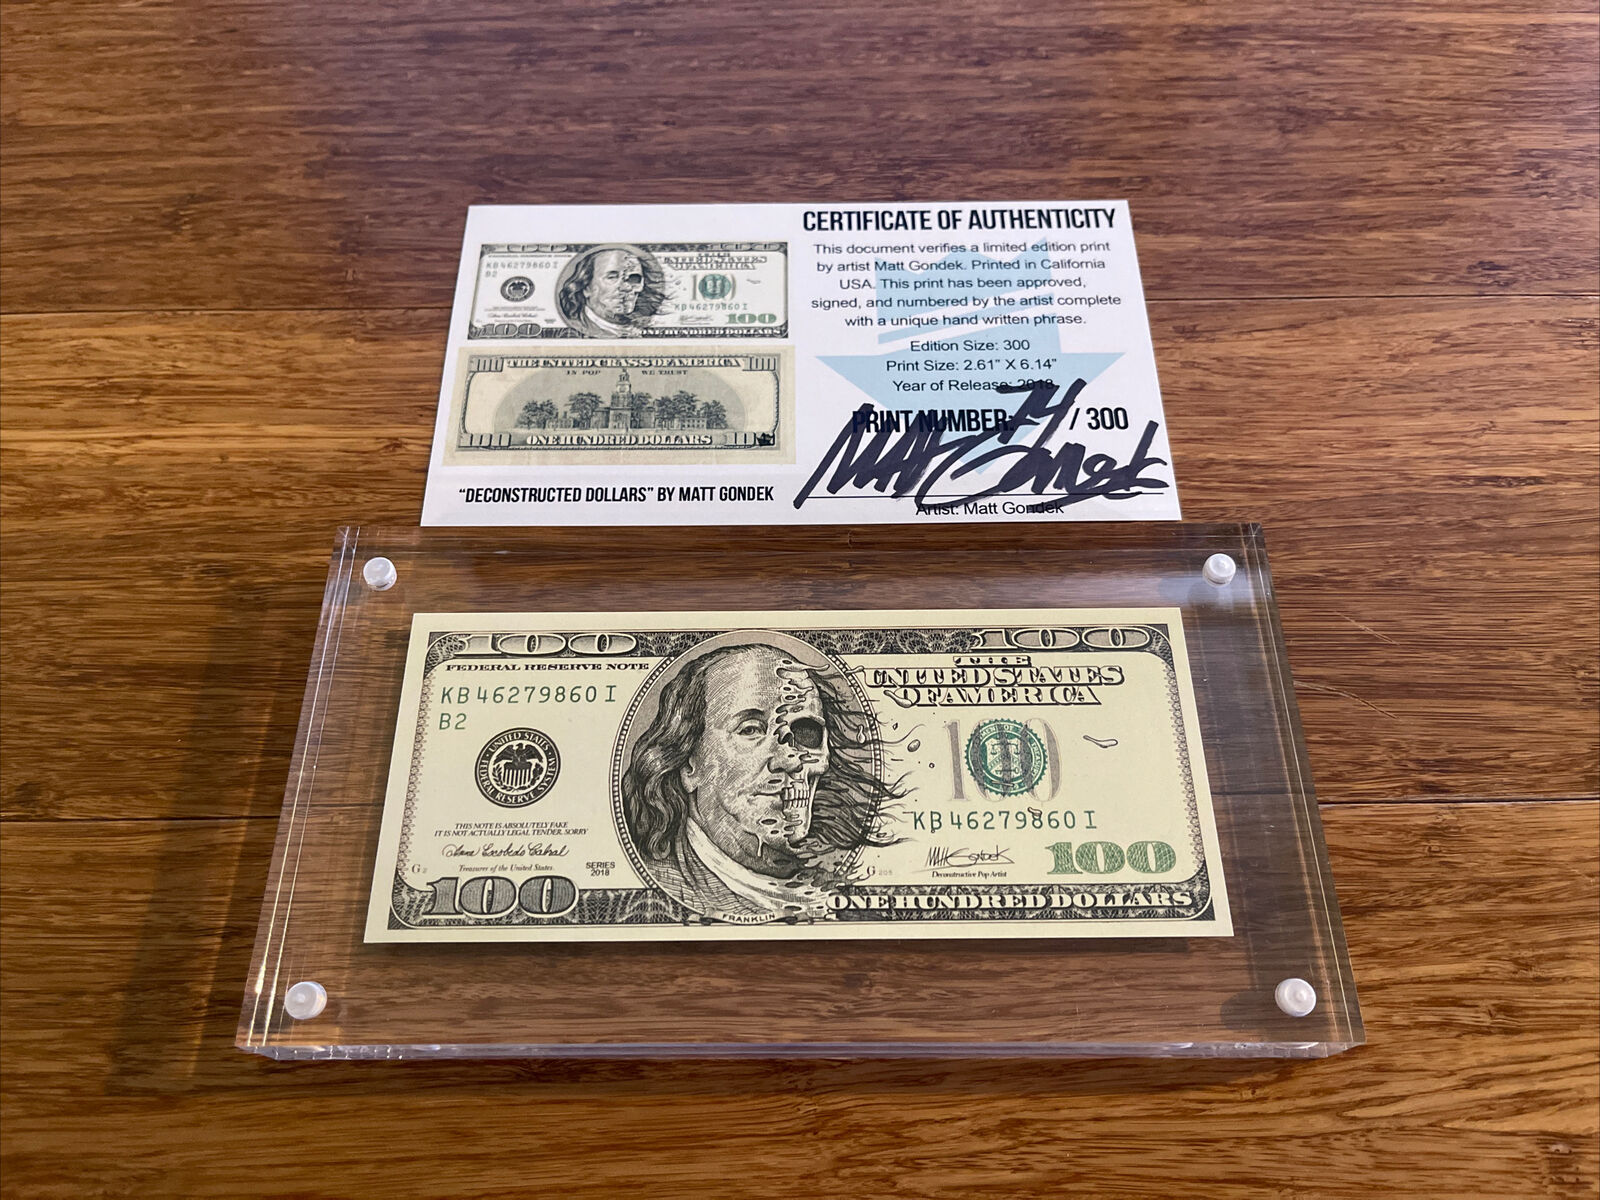 Deconstructed Dollars - Matt Gondek 74/300 on eBay thumbnail